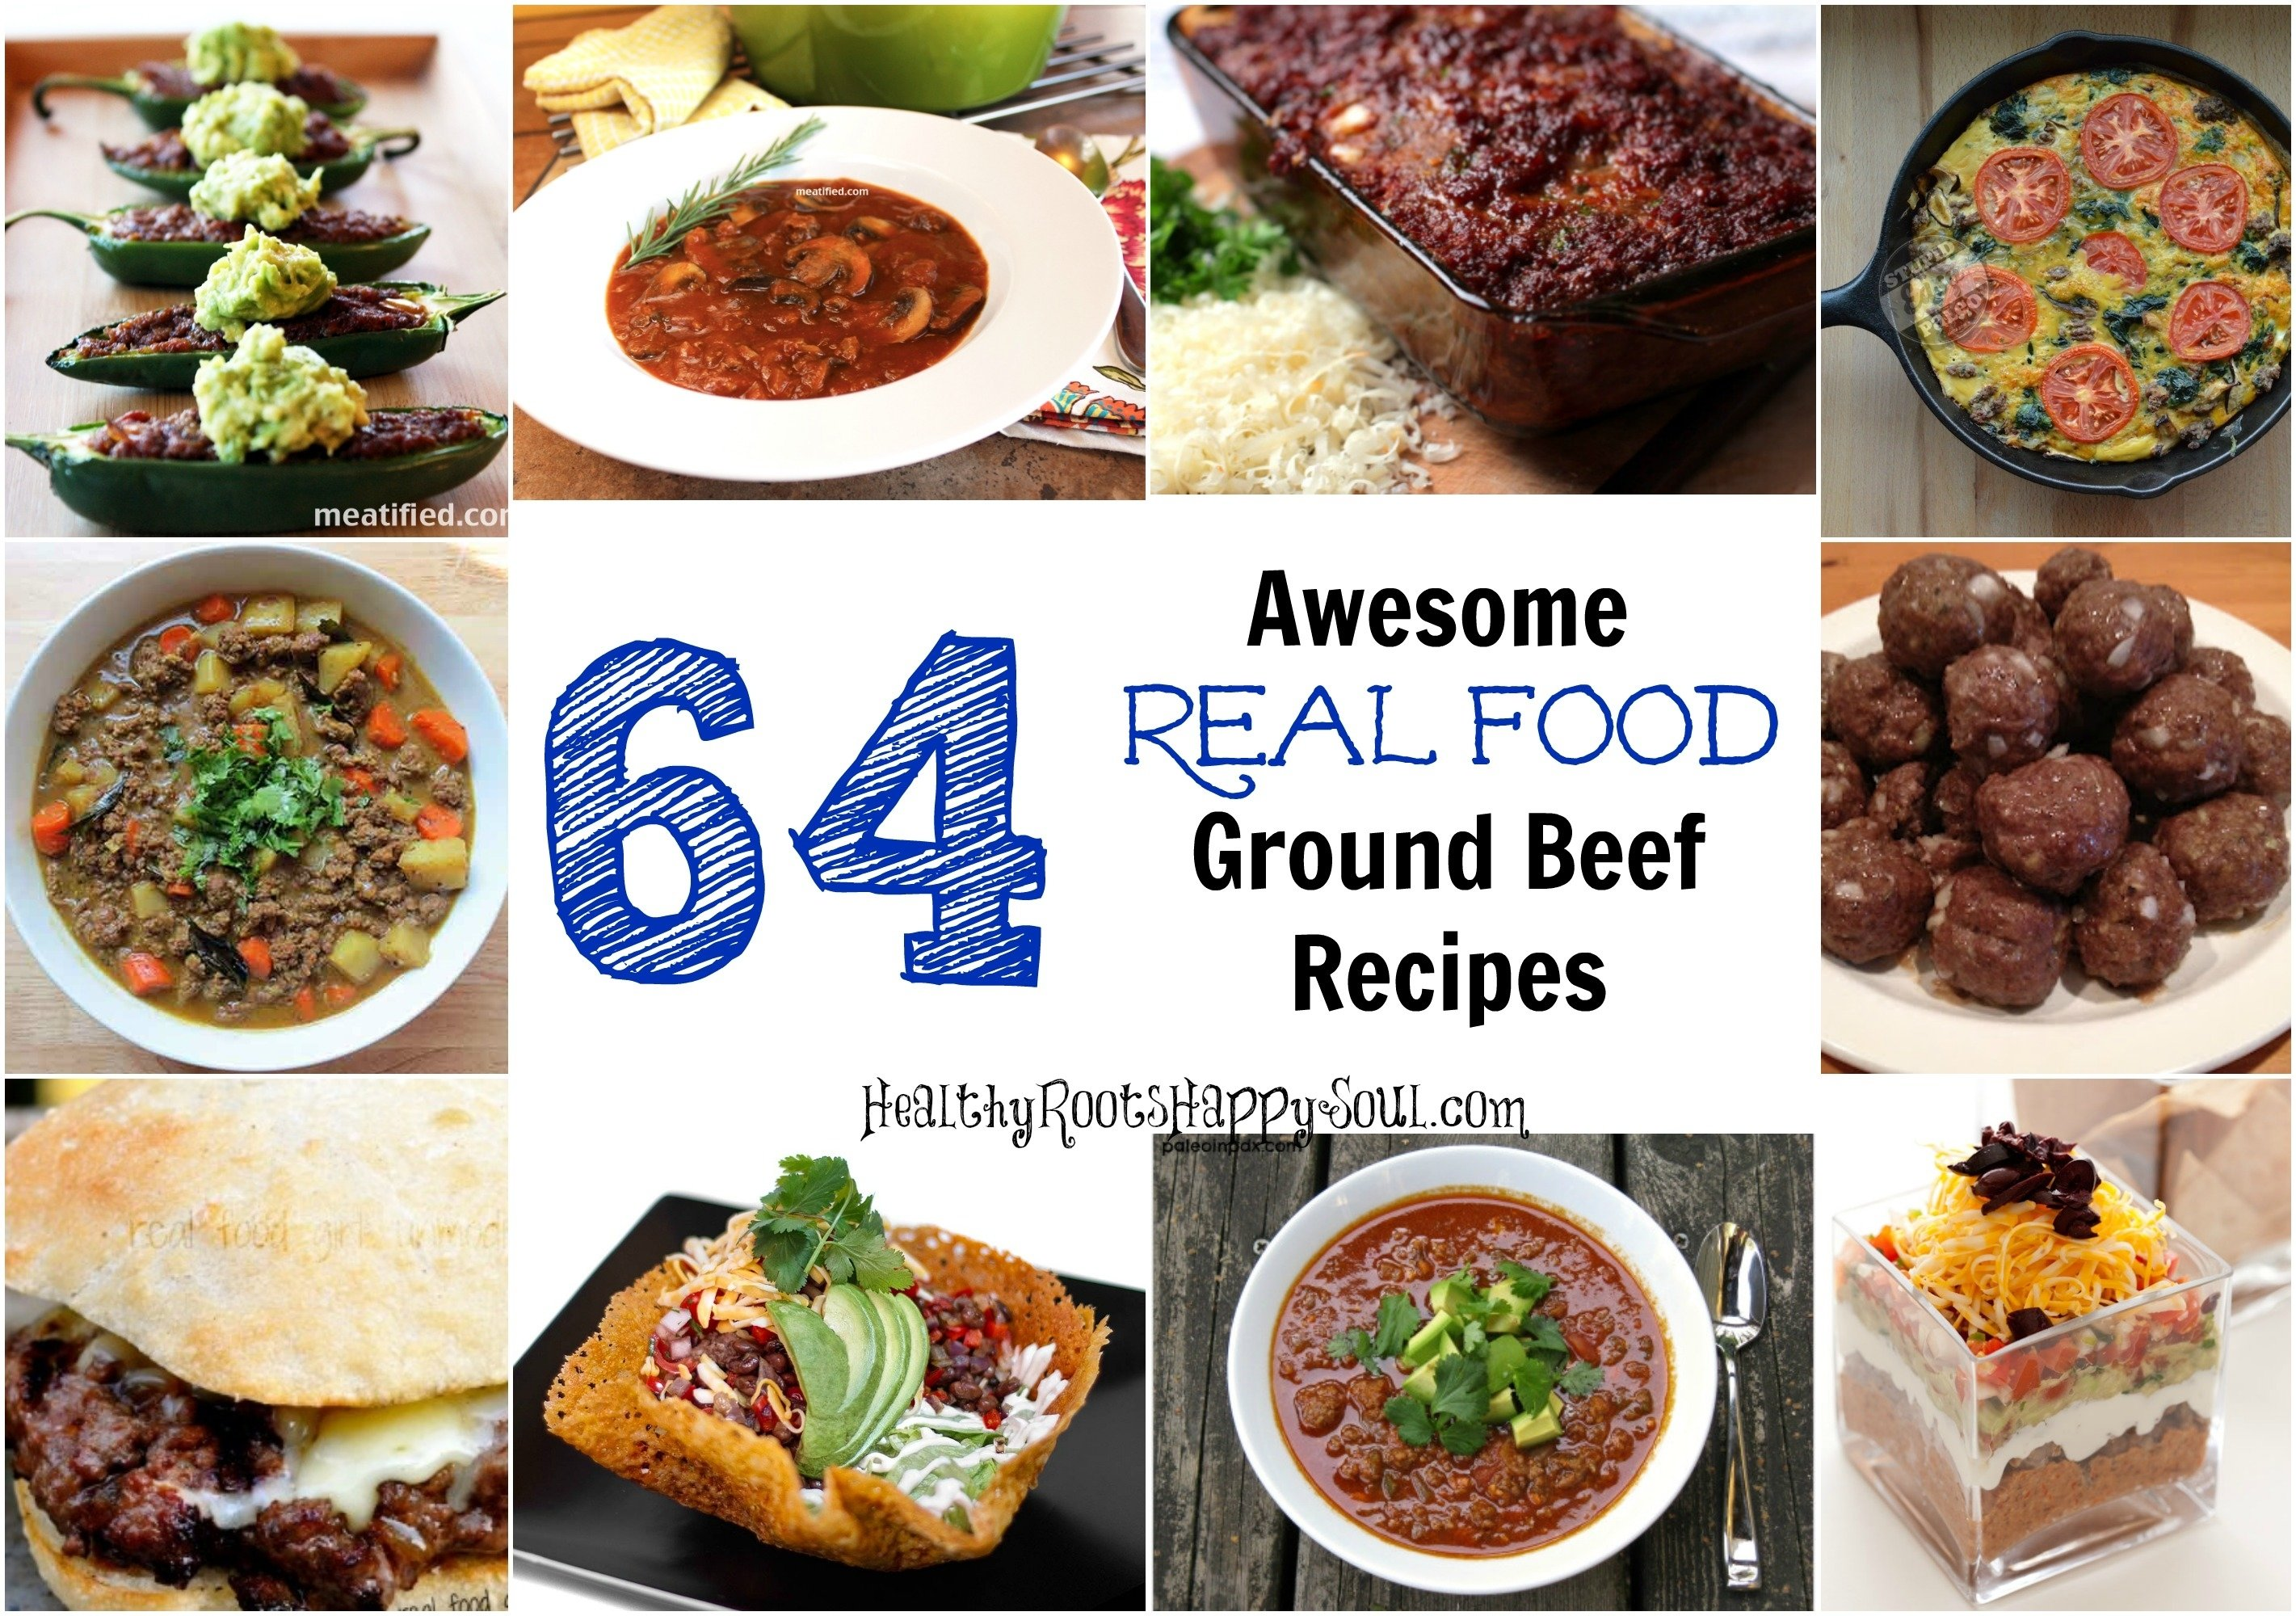 10 Most Recommended Meal Ideas For Ground Beef naturally loriel 64 awesome real food ground beef recipes 4 2020